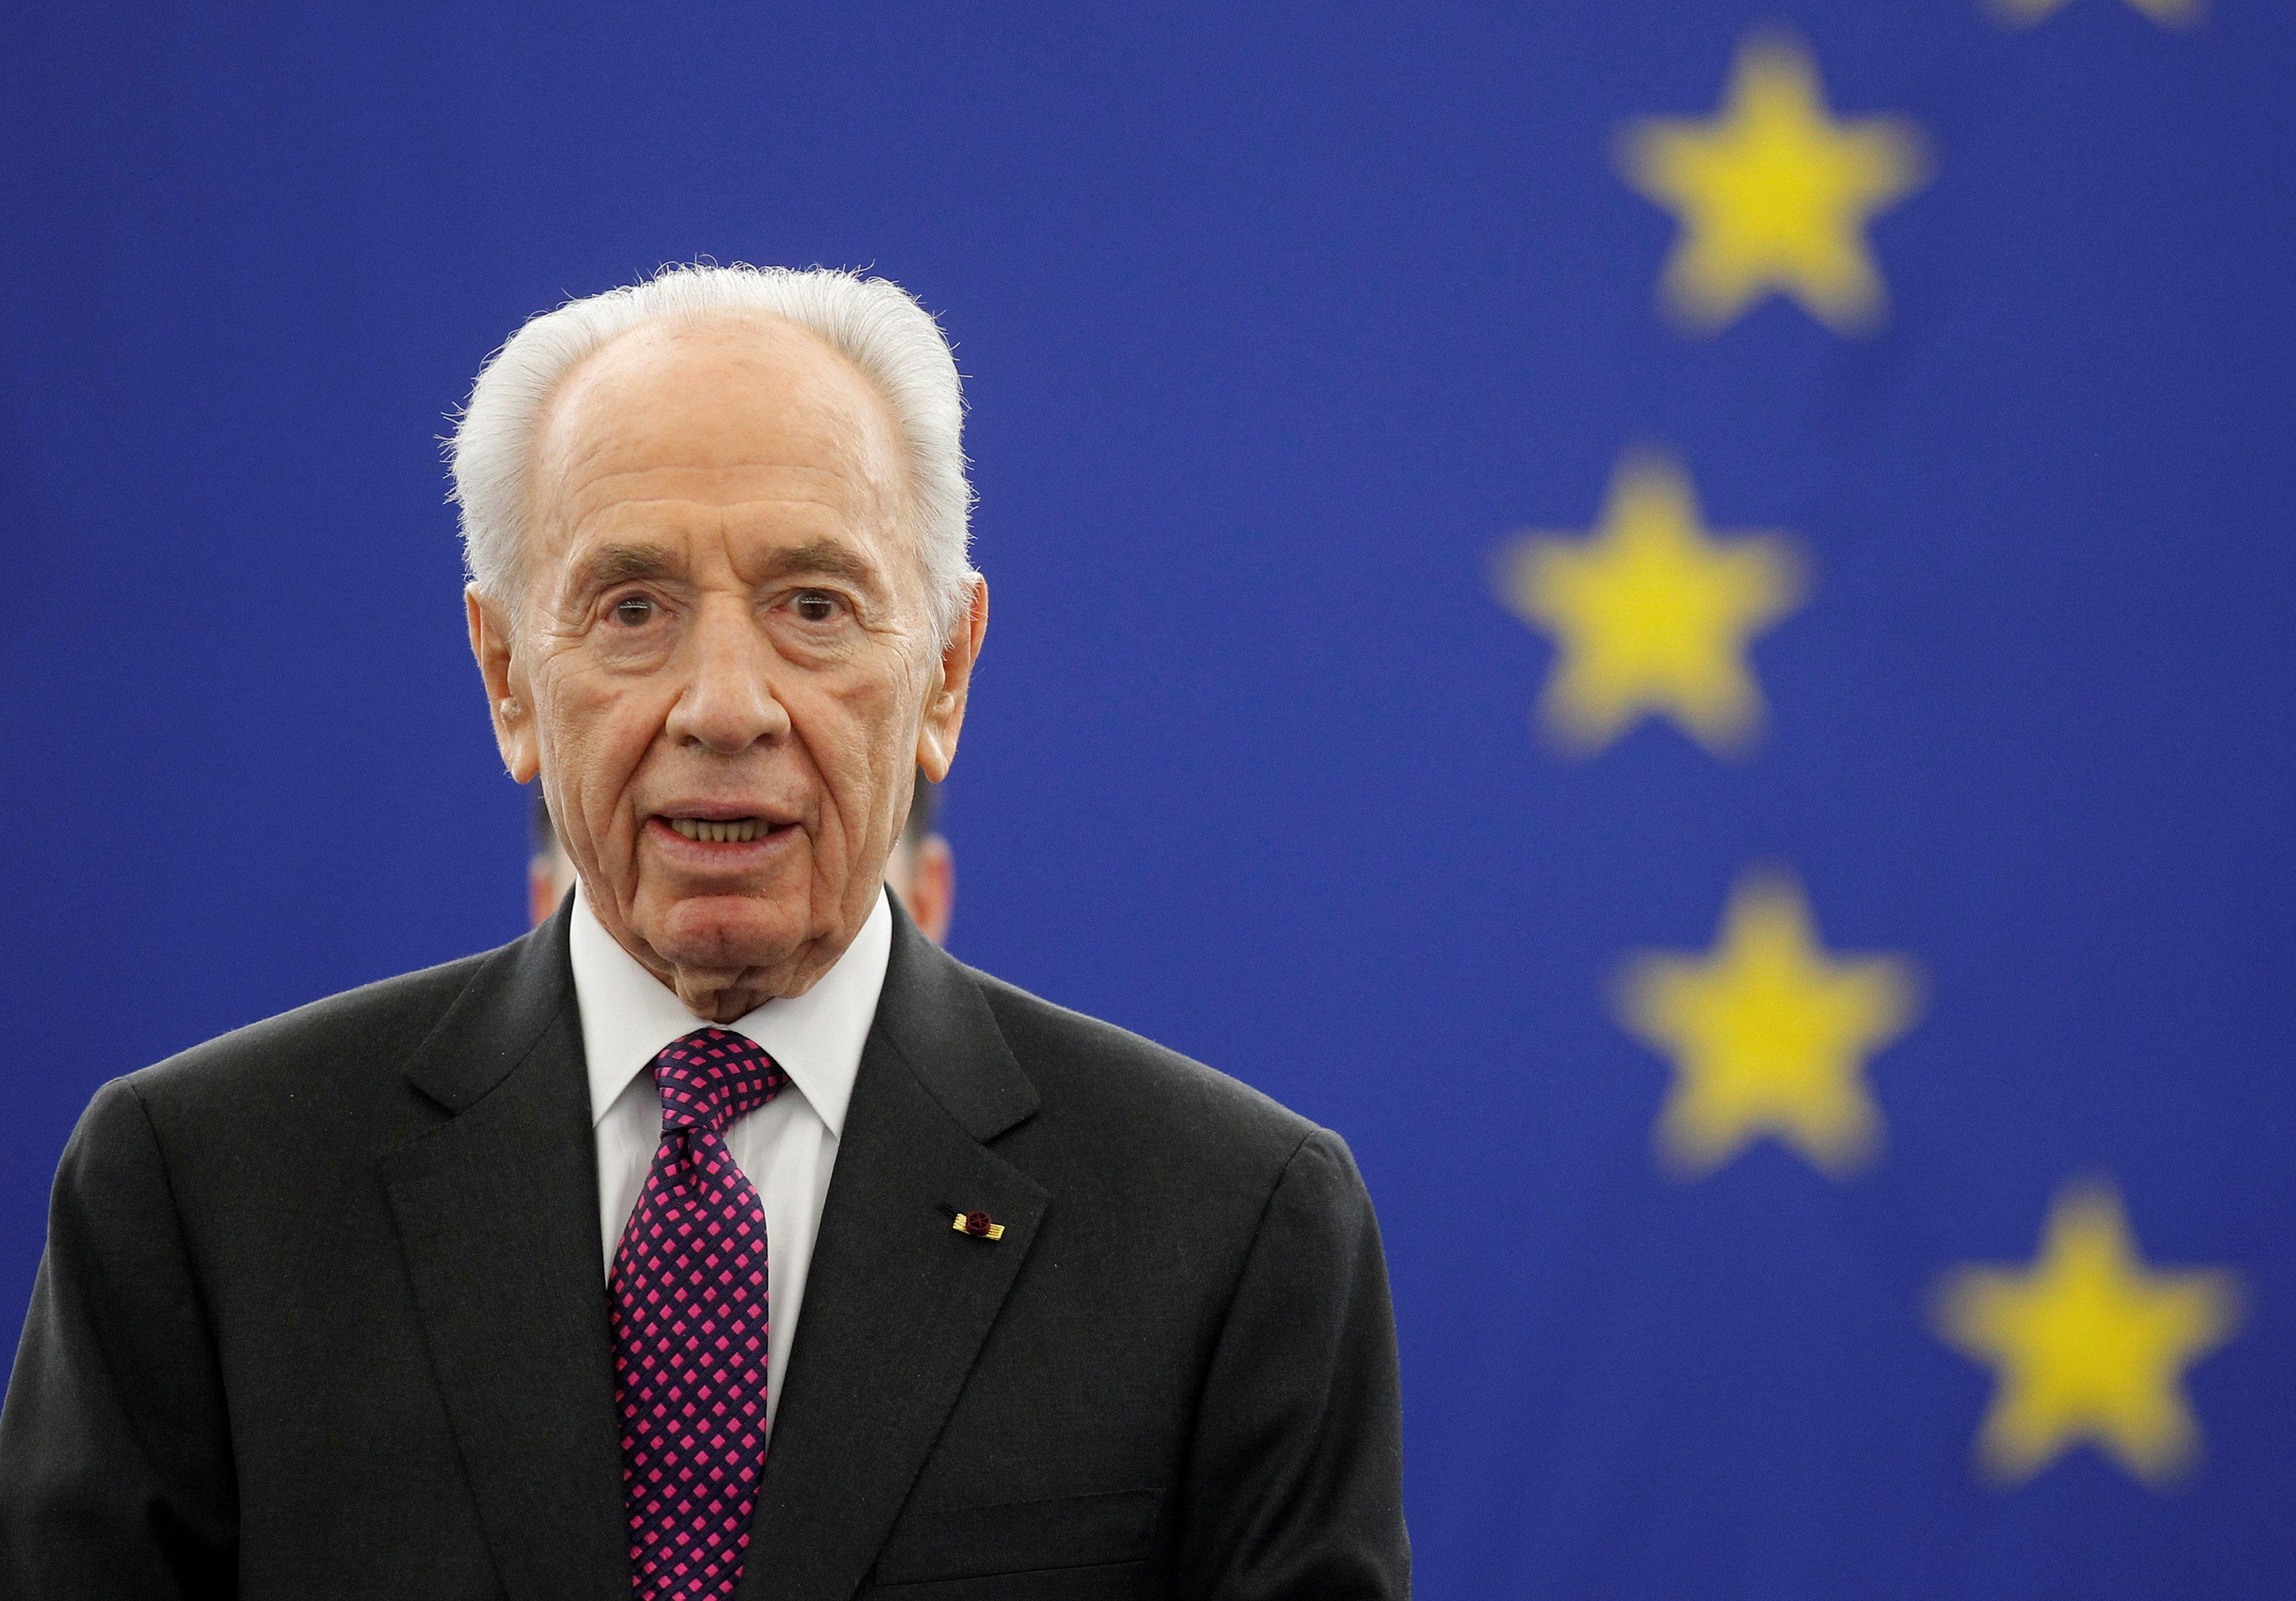 Israel's President Shimon Peres addresses the European Parliament in Strasbourg, in this March 12, 2013 file photo. REUTERS/Jean-Marc Loos/Files